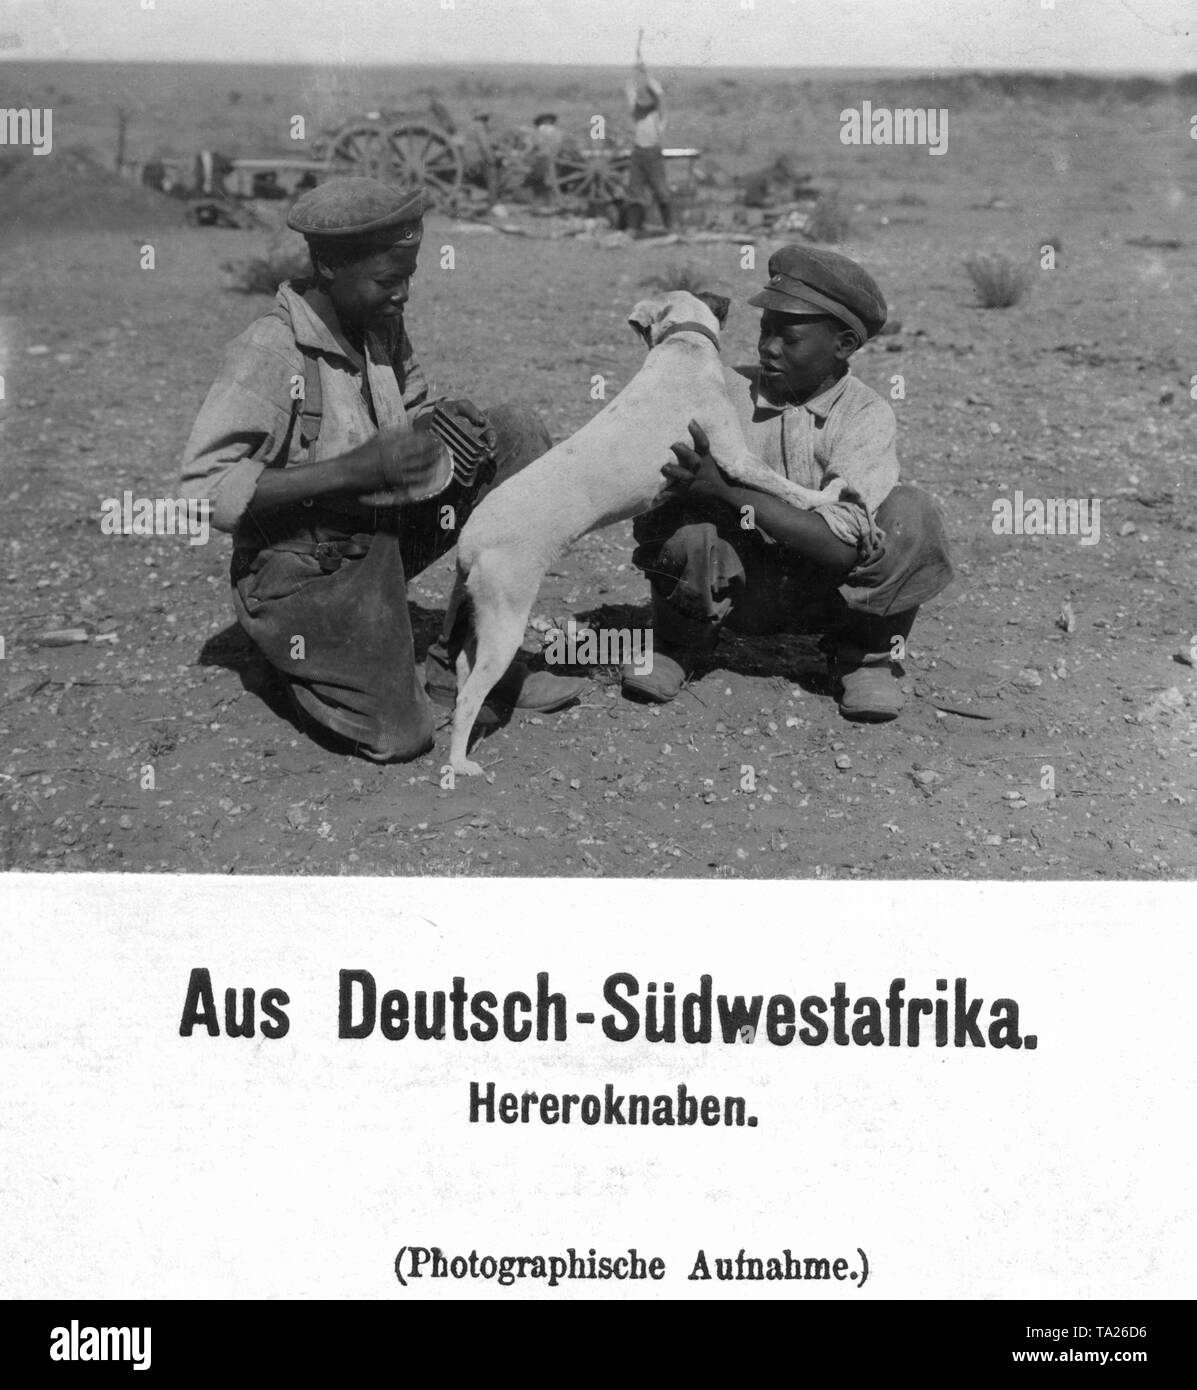 Two boys of the Herero in European clothes play with a dog in the open field. In the background men are working. In German Southwest Africa (undated photo). - Stock Image